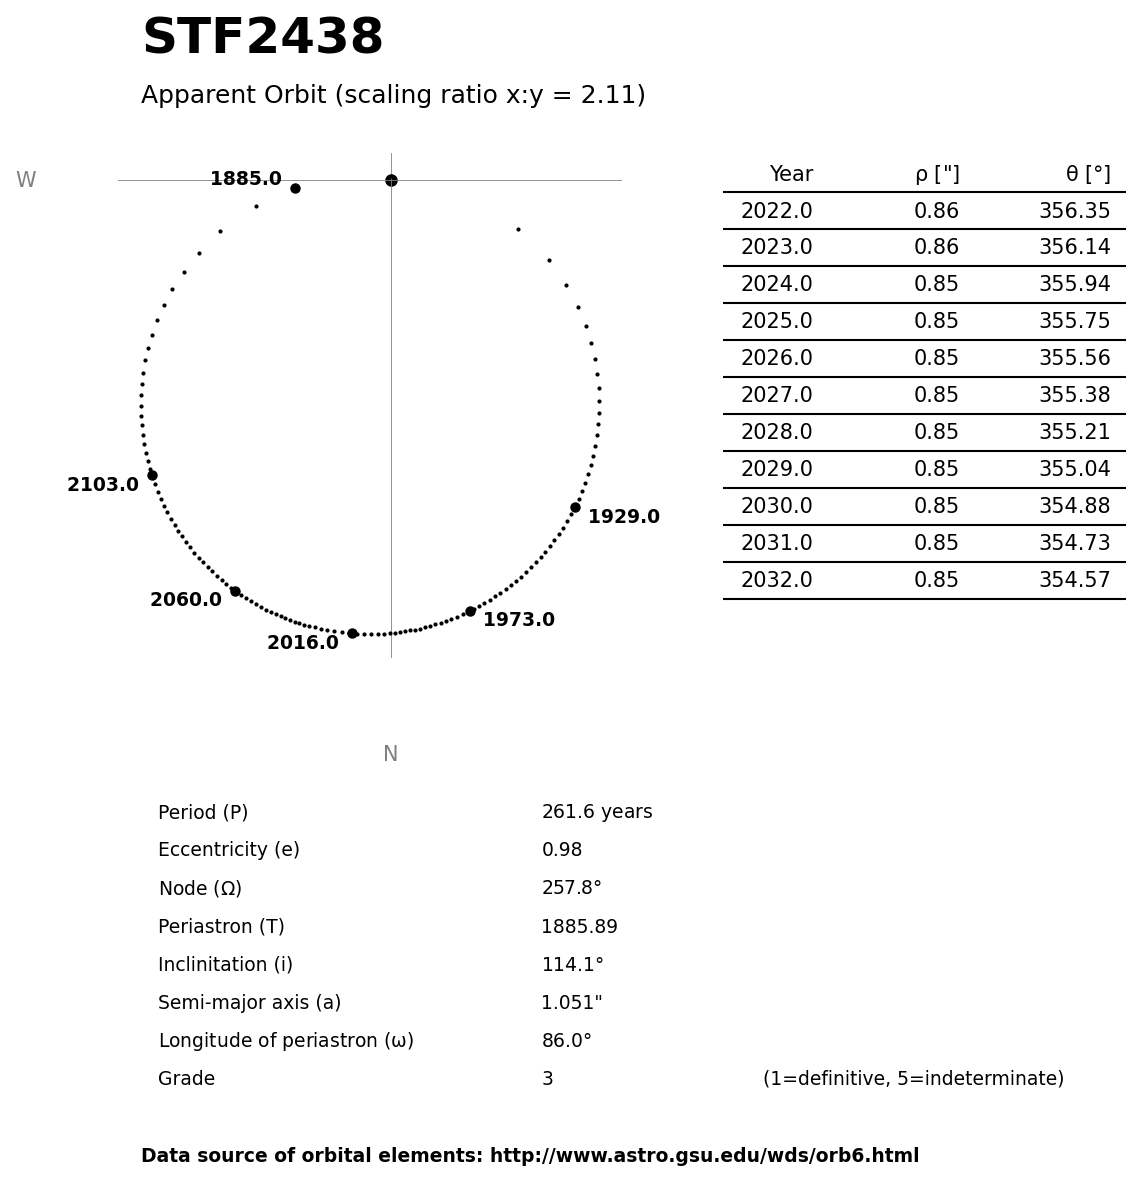 ../images/binary-star-orbits/STF2438-orbit.jpg